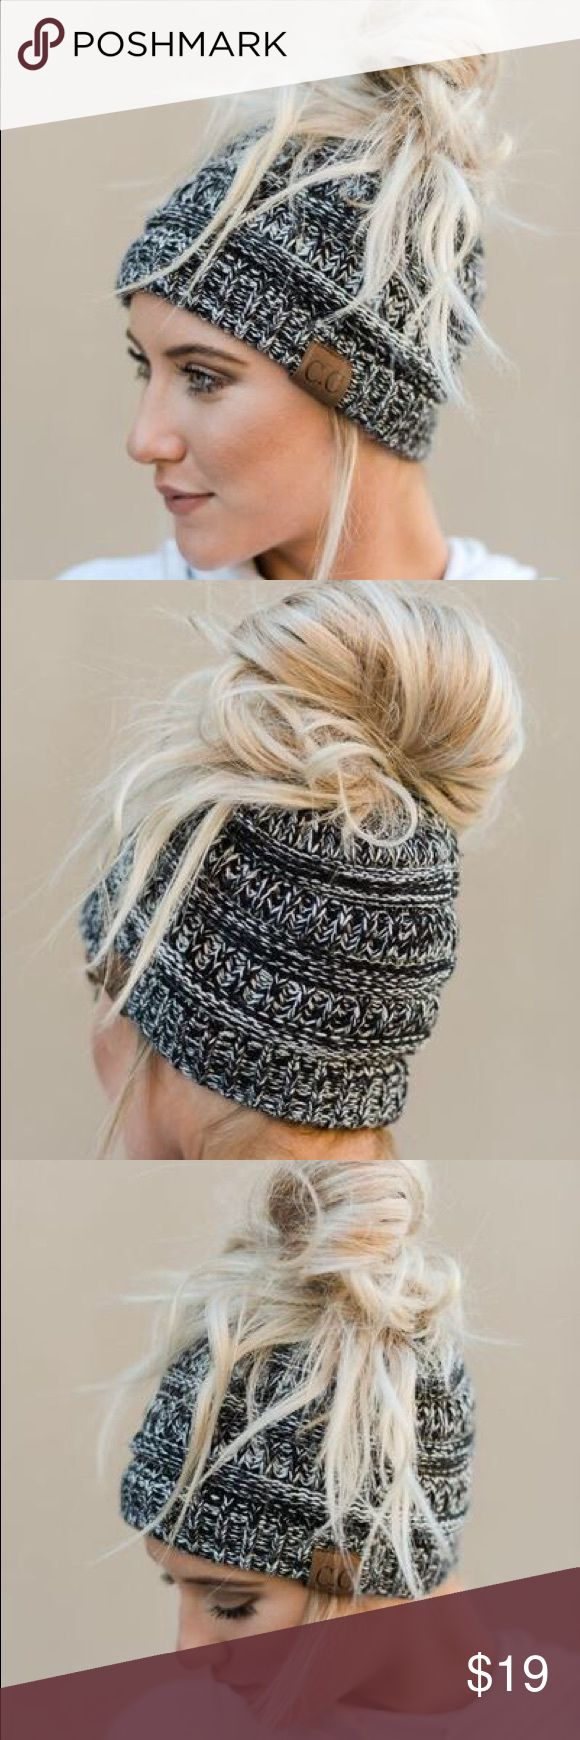 NWT CC C.C. Marled Messy Bun Ponytail Beanie Black Messy bun/ponytail lovers and beanie wearers UNITE. You can now wear a messy bun or ponytail and a beanie all at the same time with our amazing Messy Bun Knitted Beanie Hat. Super cute and perfectly cozy this marled knitted acrylic yarn beanie with an elastic opening to pull your messy bun or ponytail through is a cold weather staple and answer to bad hair days. Content:  50% Cotton, 50% Acrylic Made in China Accessories Hats